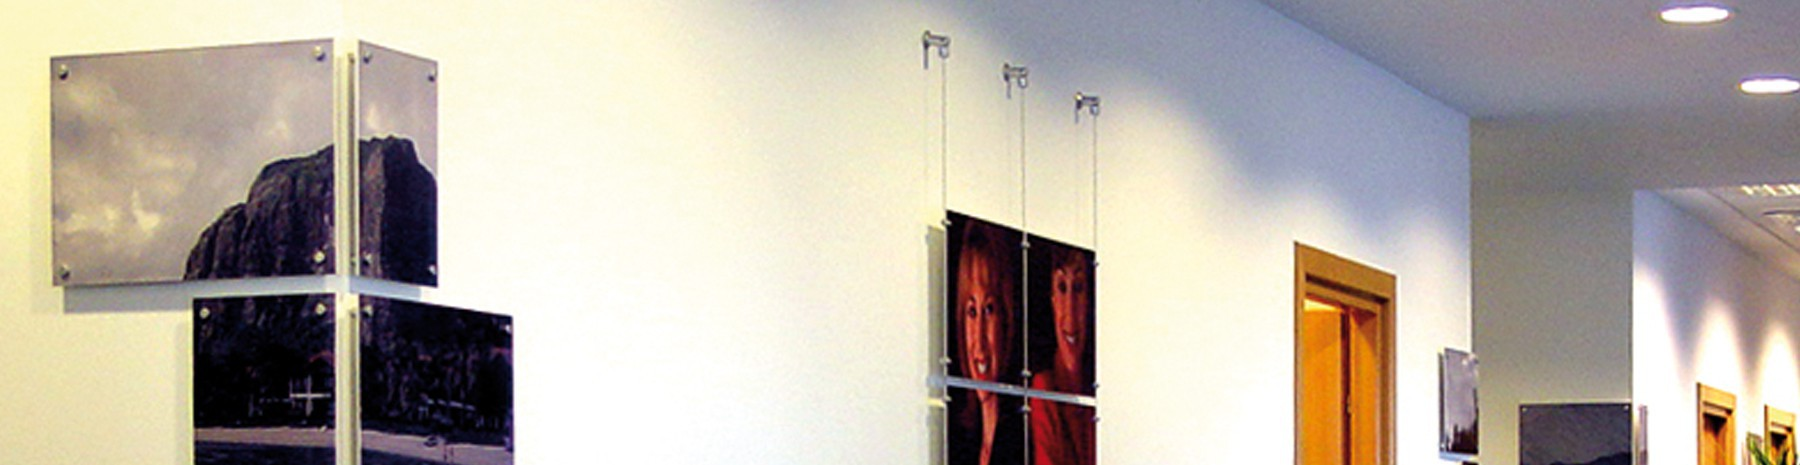 Suspended Display Systems and Cable Display - diameter 1,5mm